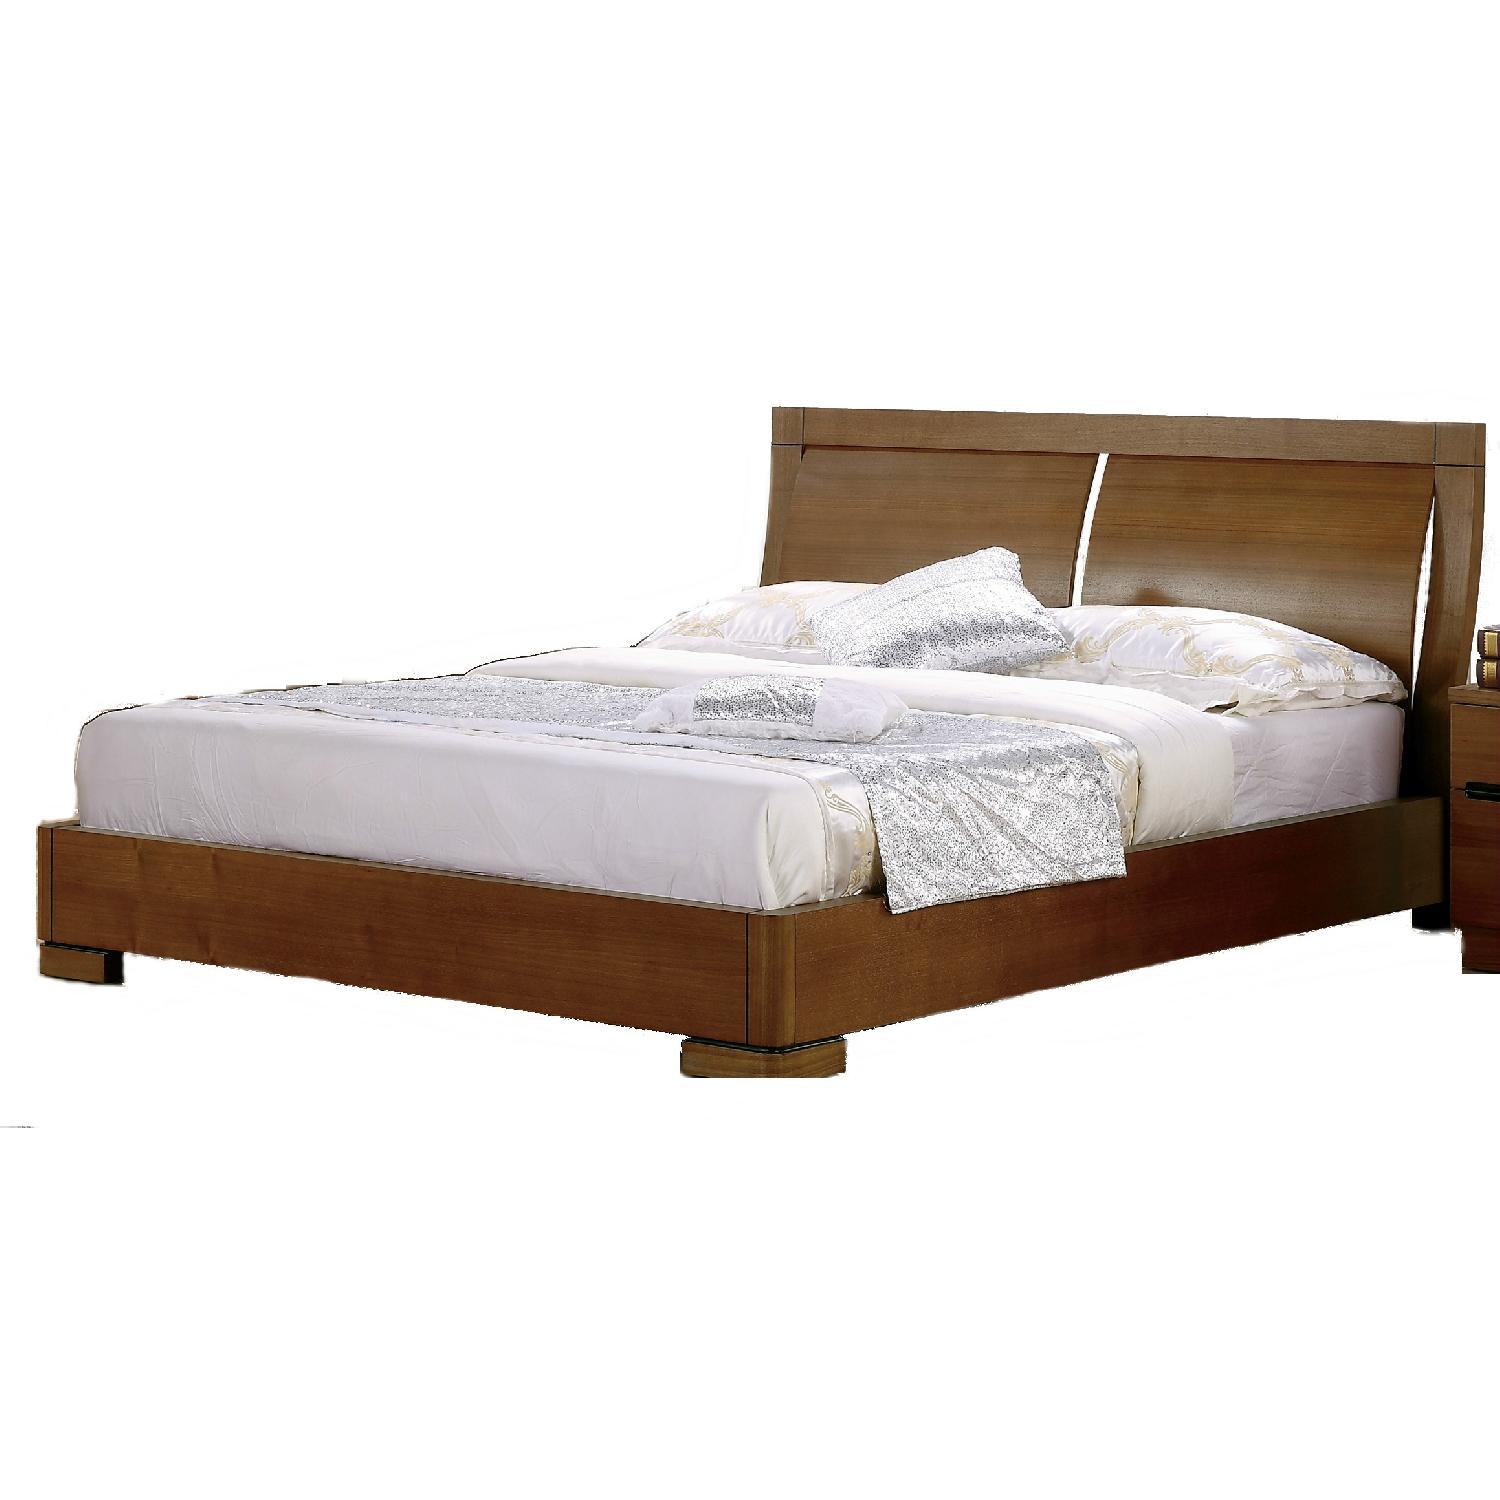 Modern King Size Platform Bed in Teak Finish With Clean-Line Design & Slightly Curved-Out Headboard